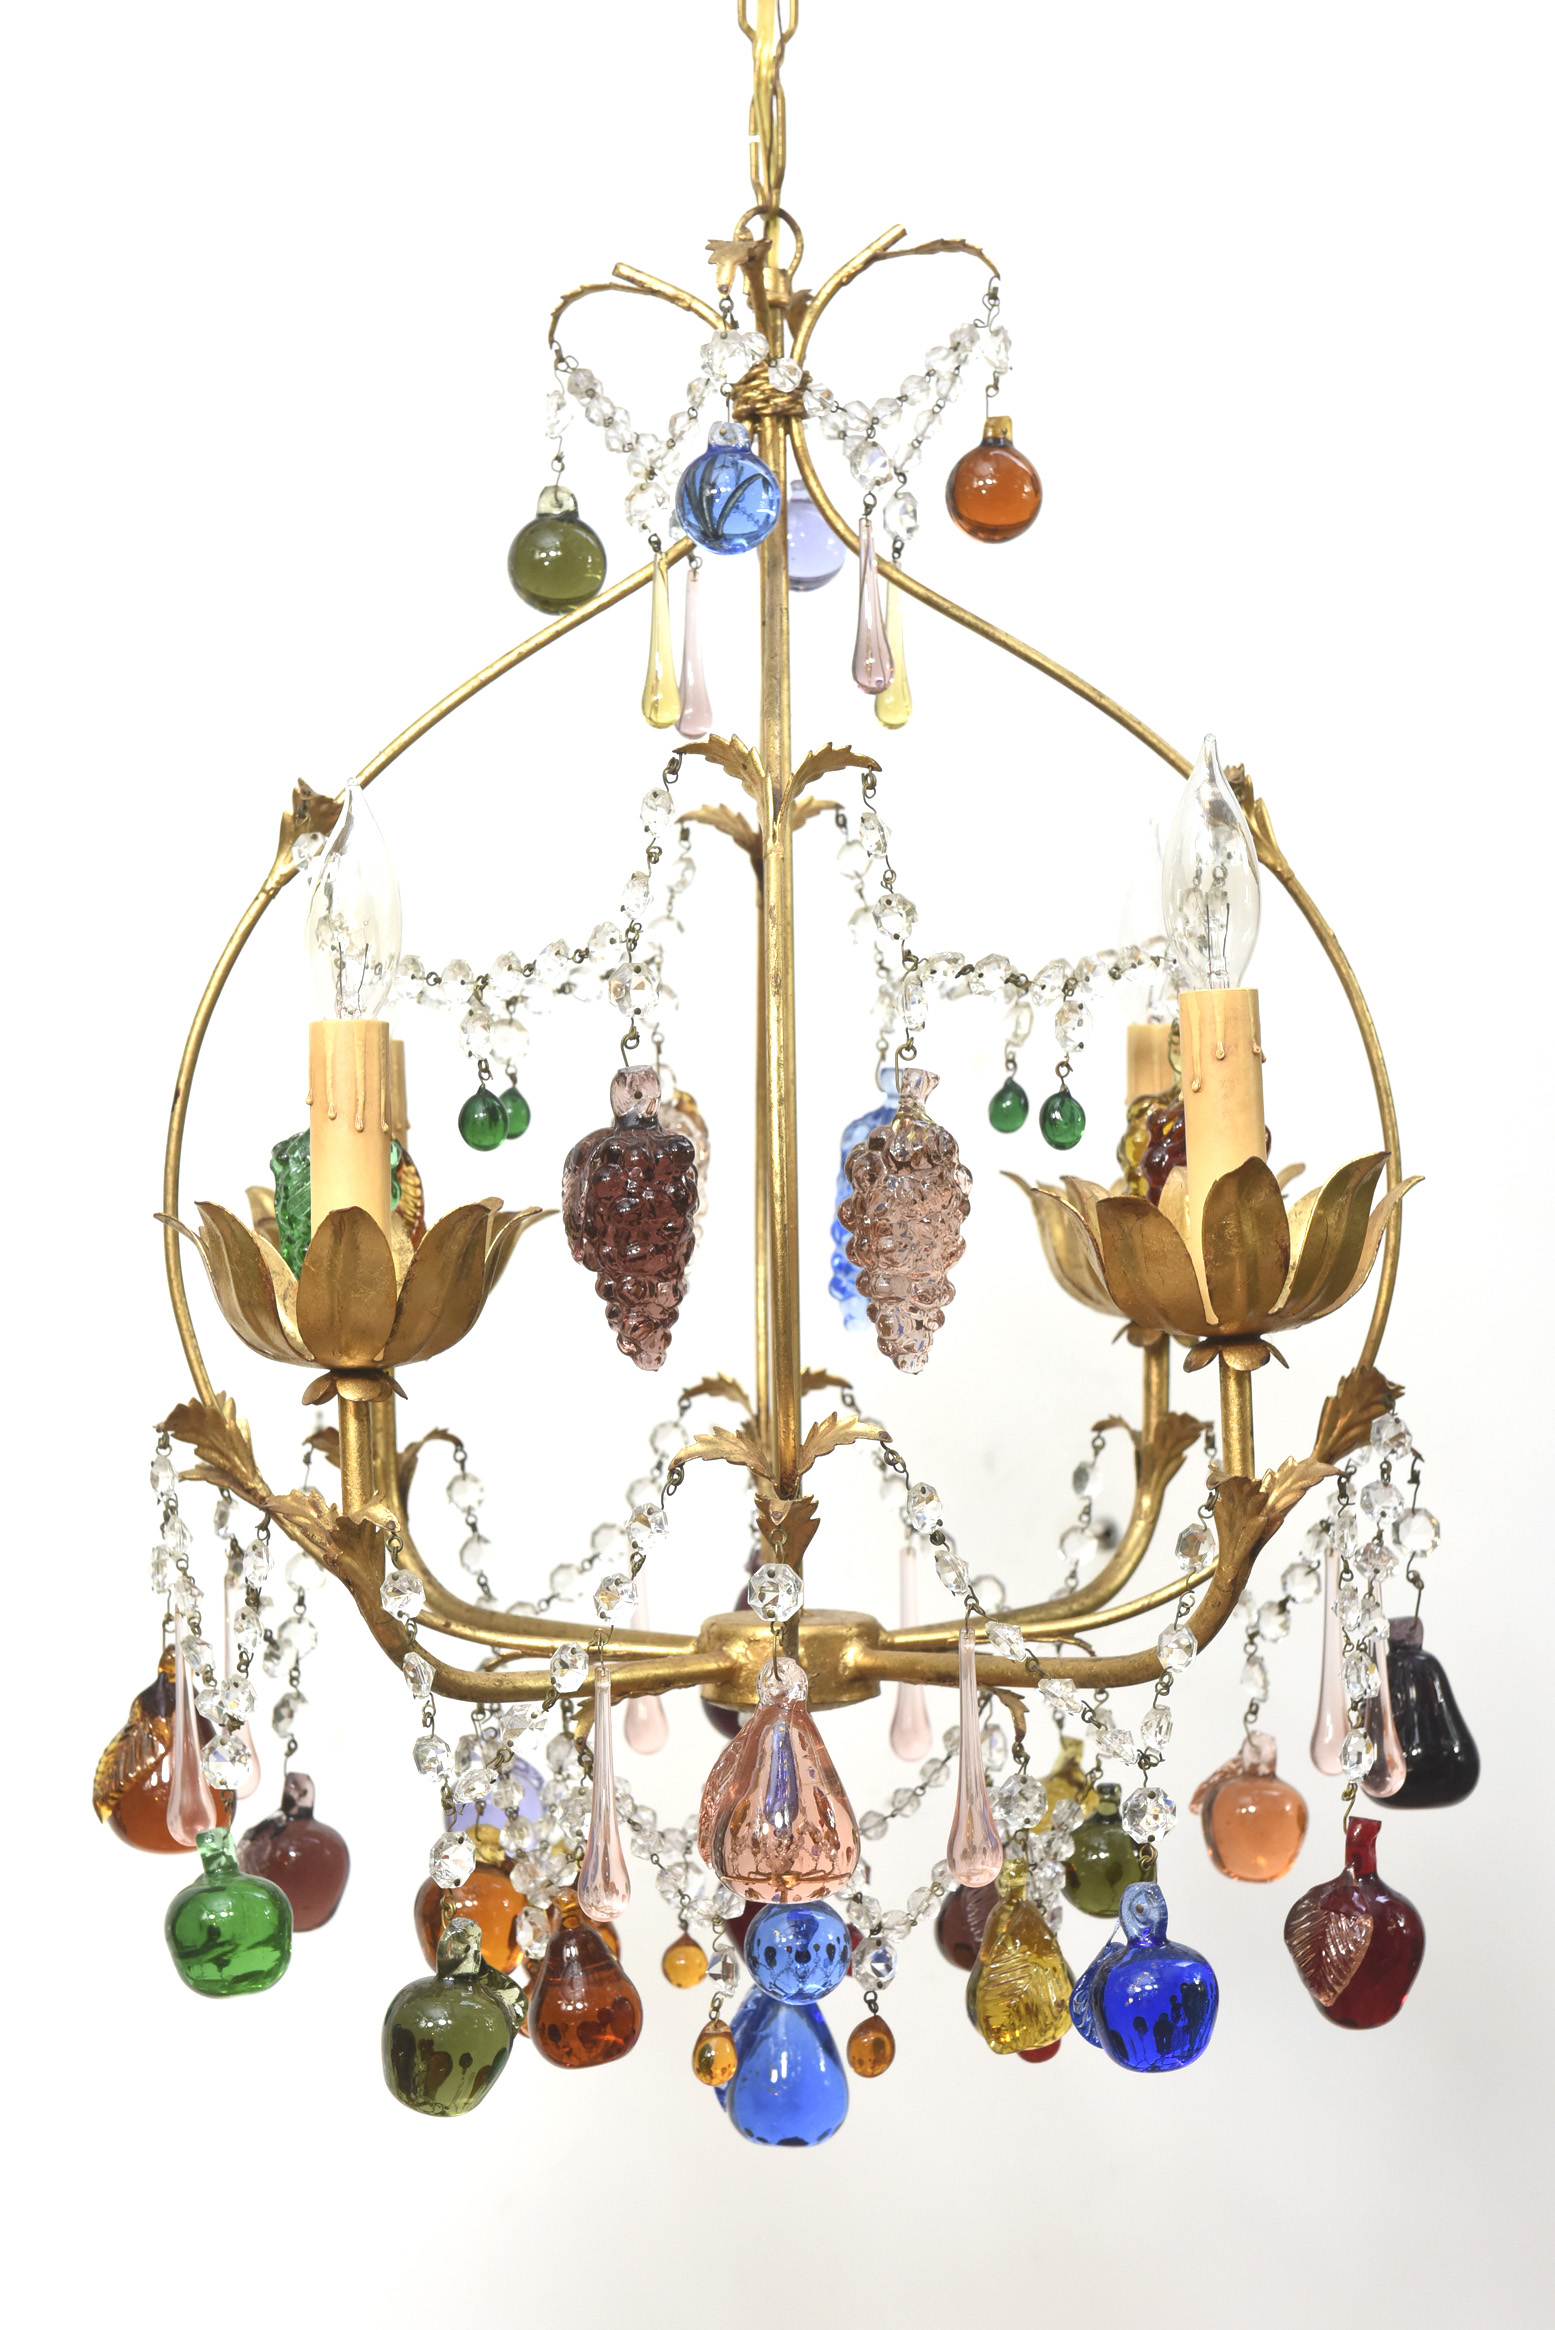 Colorful vintage italian chandelier with hanging crystal fruits homecrystal colorful vintage italian chandelier aloadofball Gallery